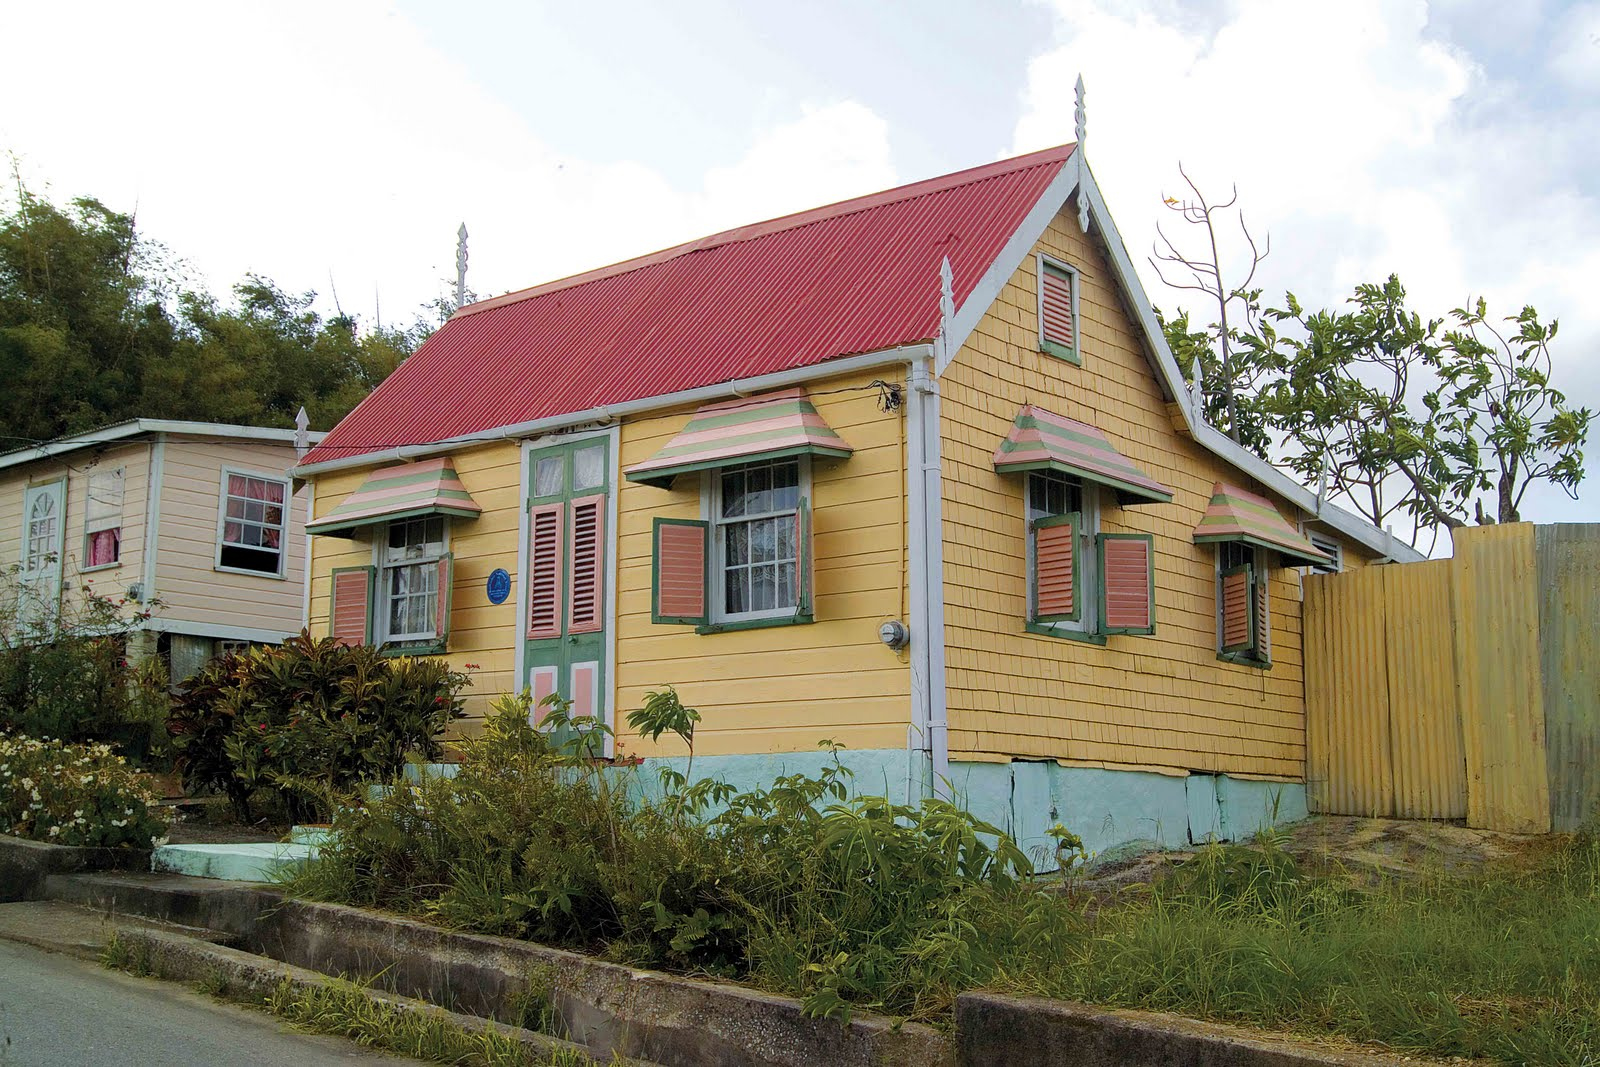 Download this Chattel Houses picture